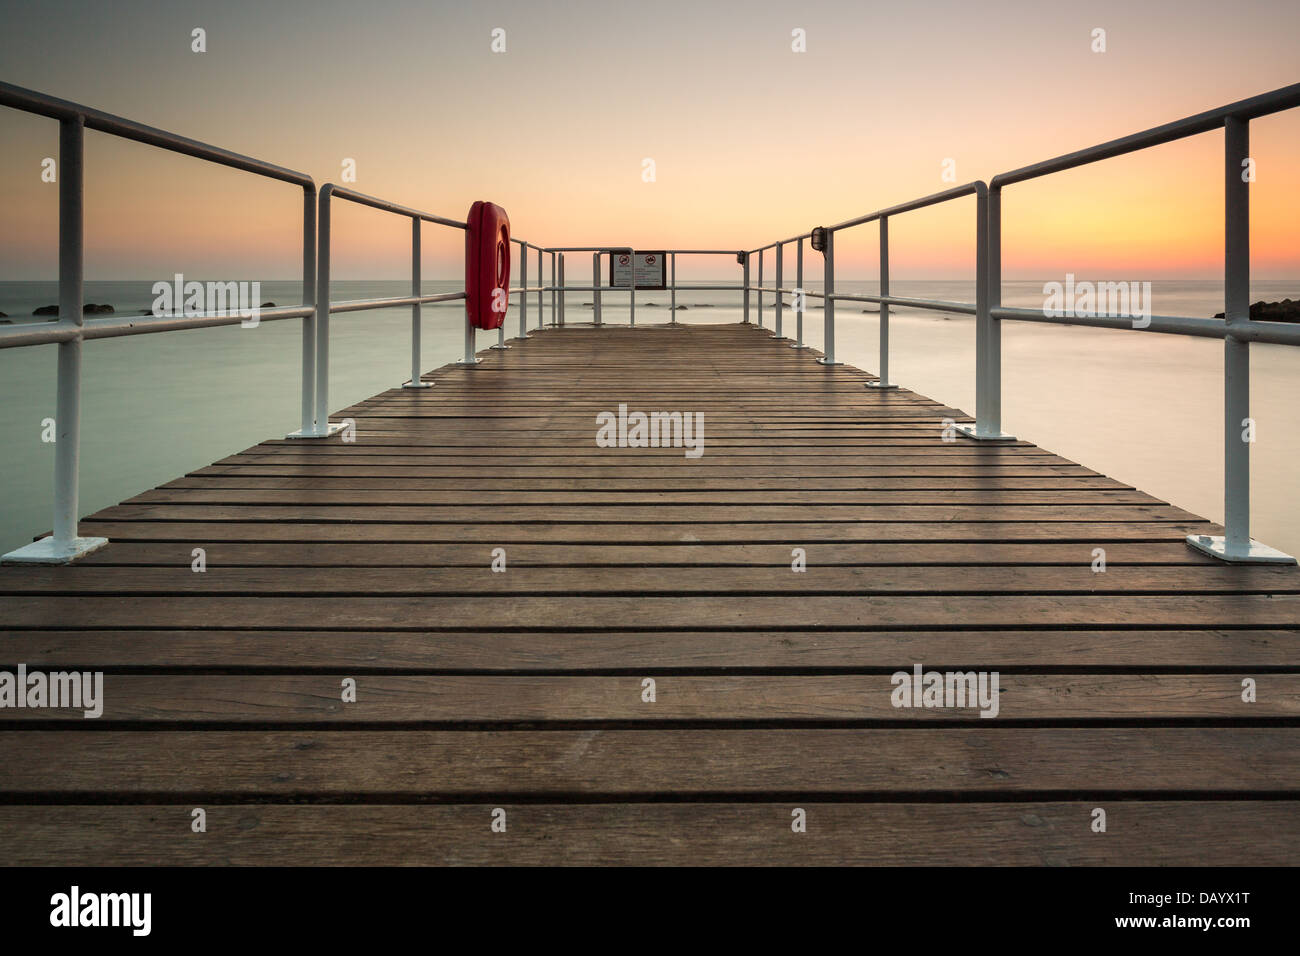 Paphos, hotel jetty in Cyprus at sunset - Stock Image